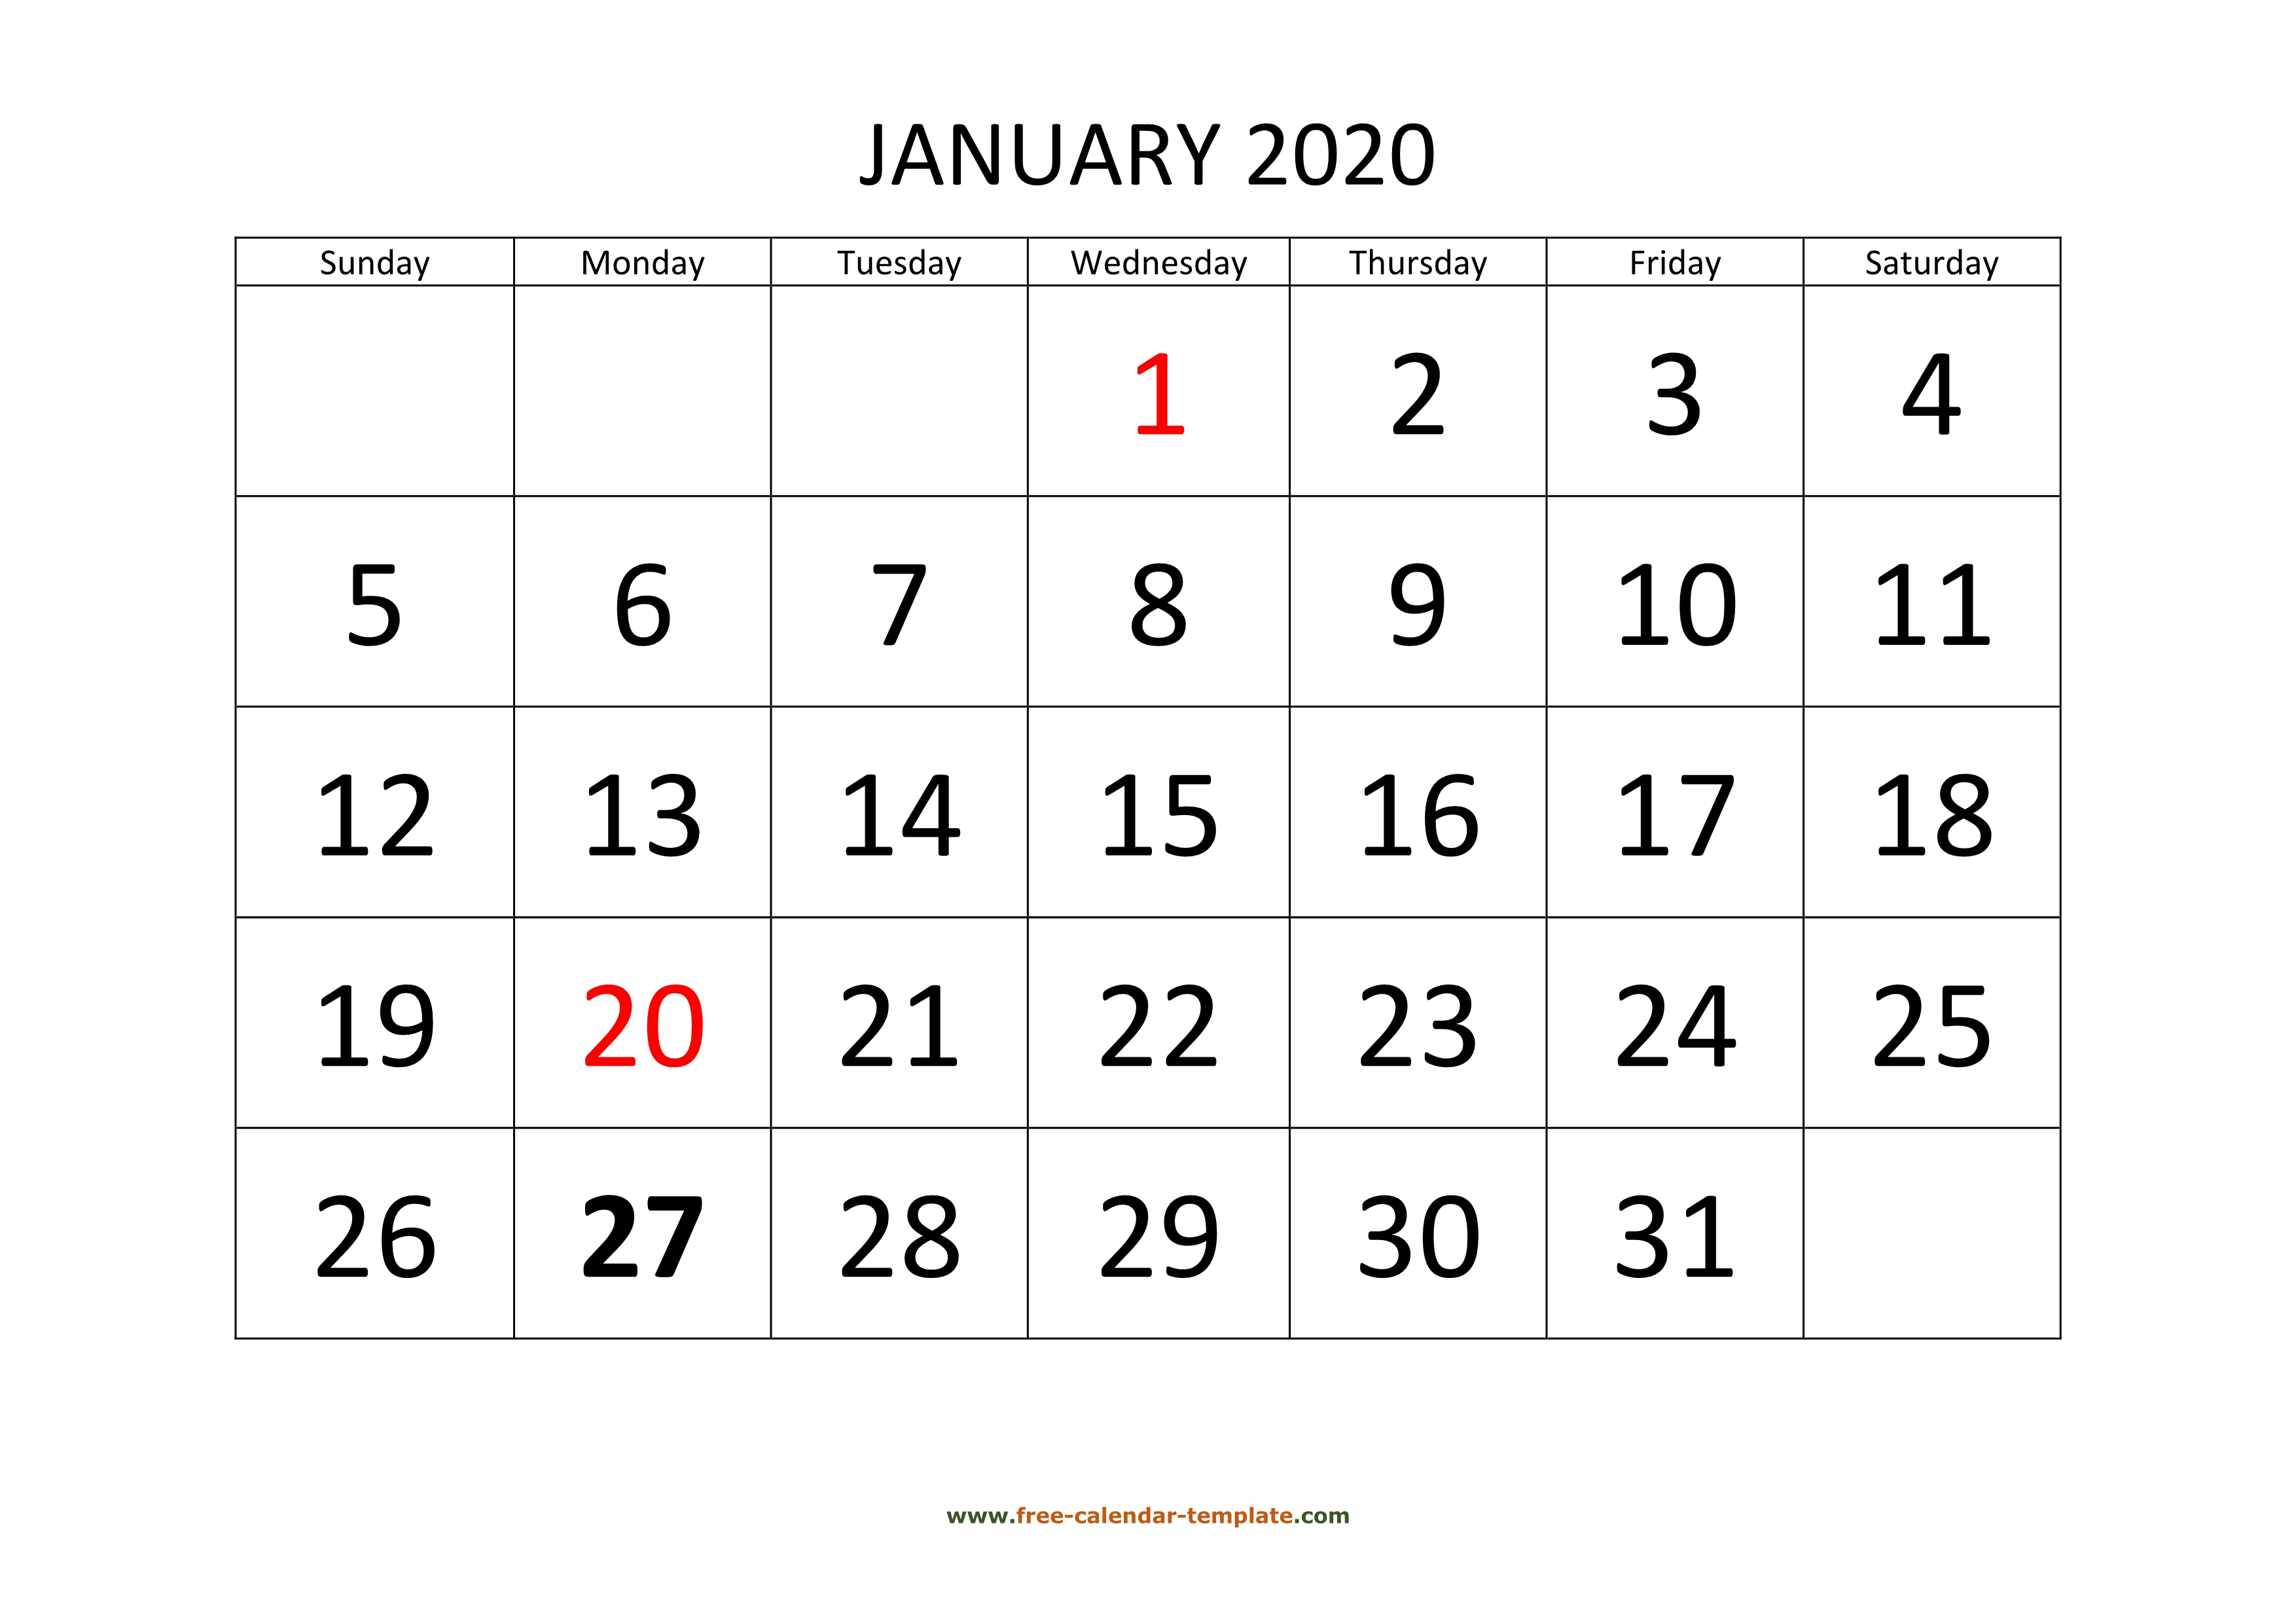 January 2020 Calendar Designed With Large Font (Horizontal throughout Free Printable 2020 Calendars Large Numbers